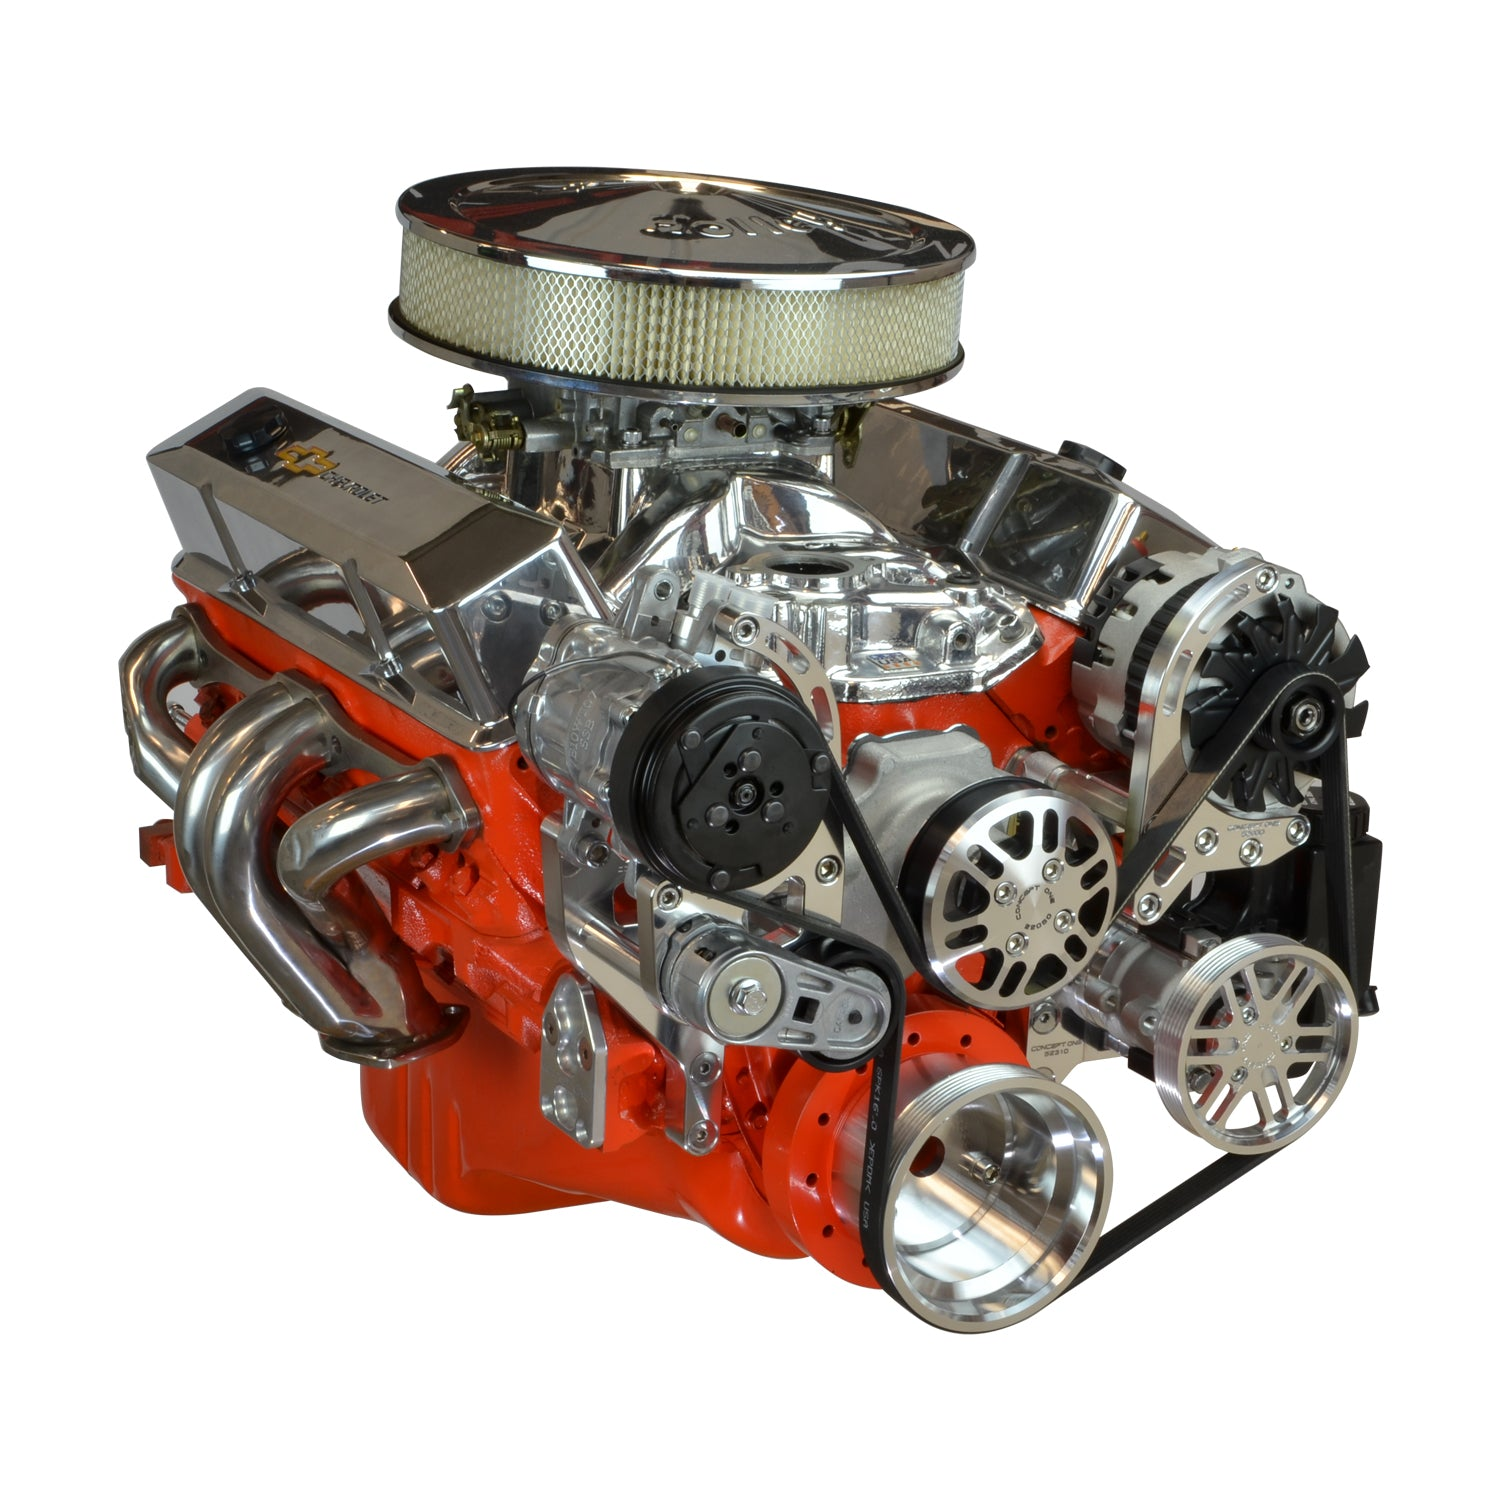 Chevy Small Block Driver Series Kit with Alternator, A/C and Power Steering